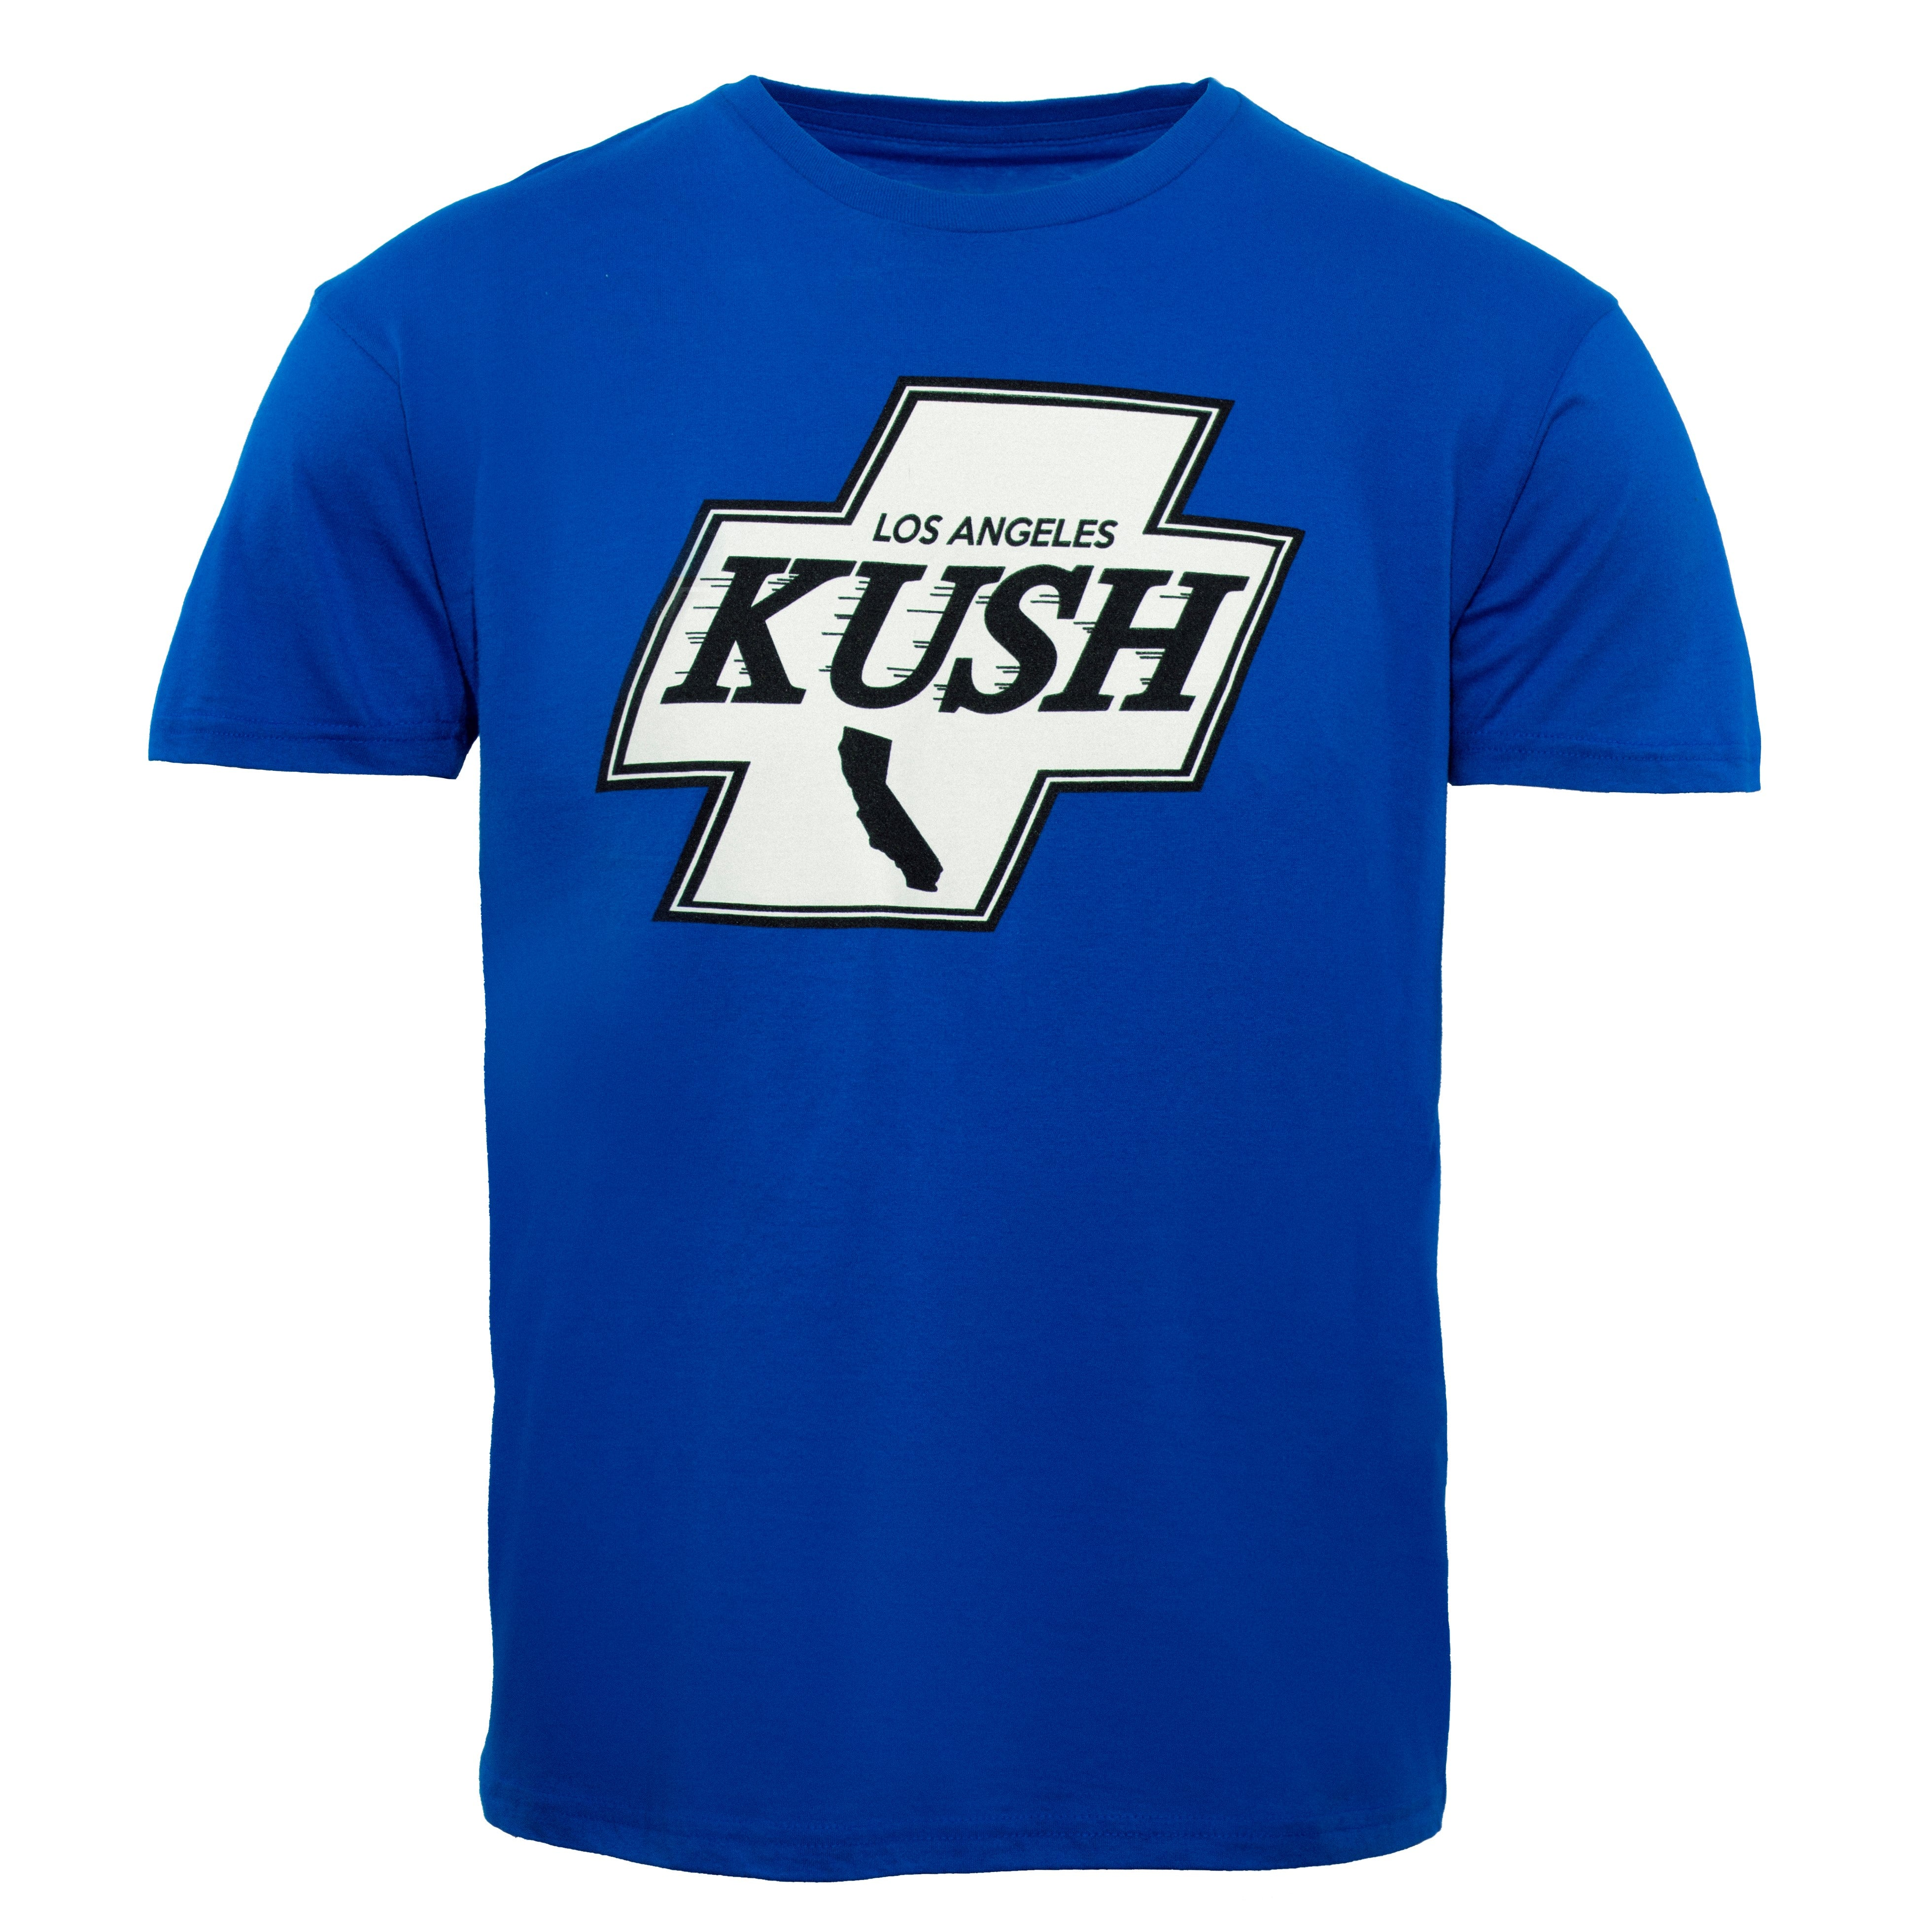 LA Kush Cross Tee - Blue/White